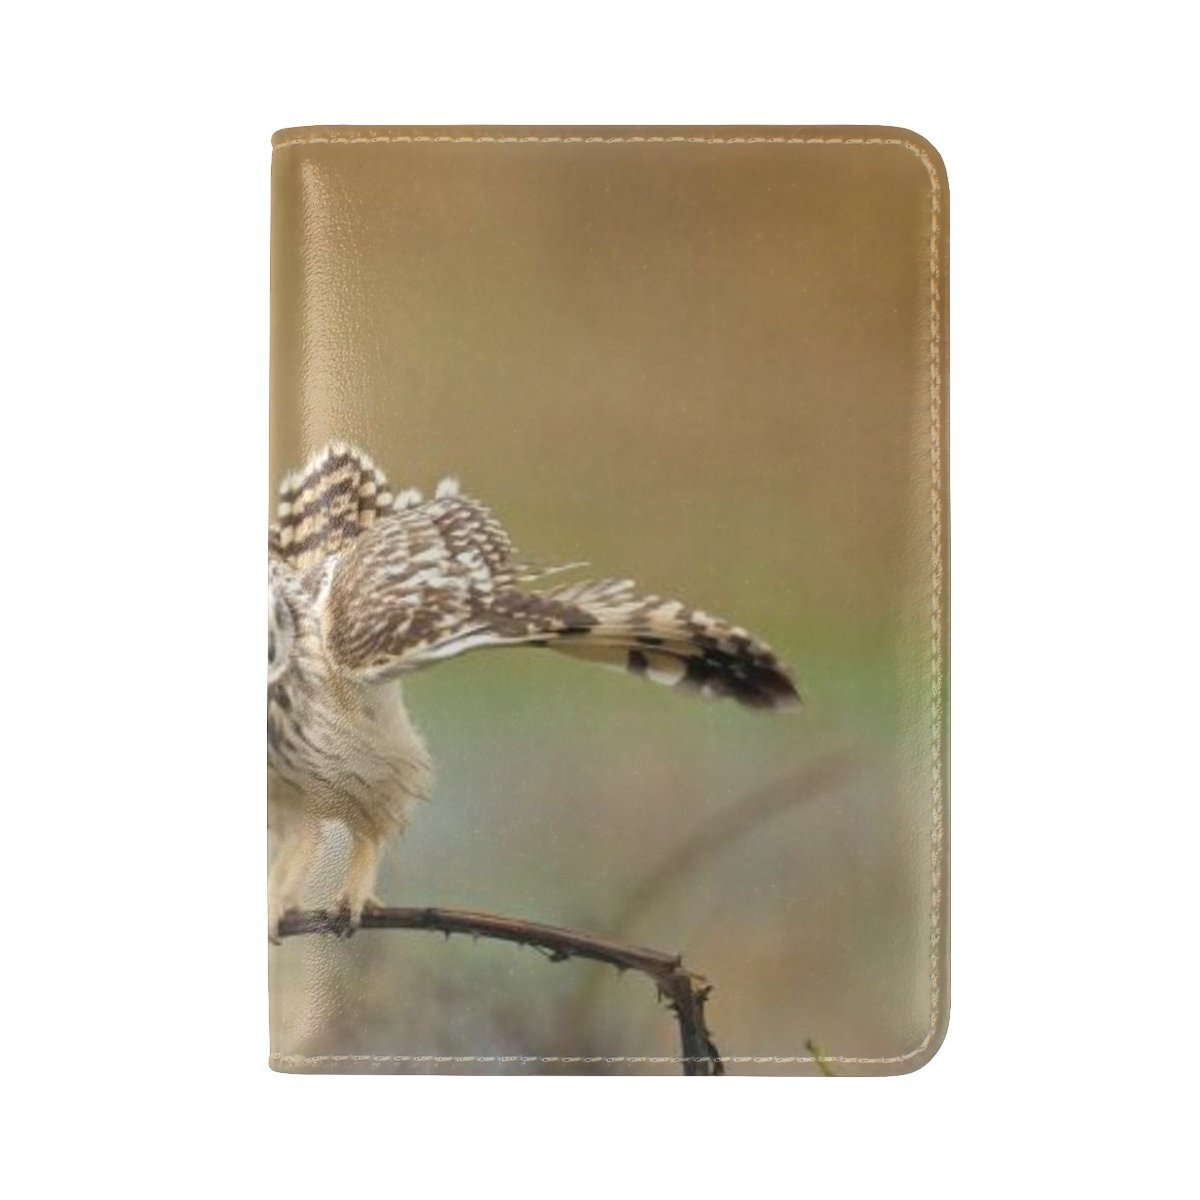 Animal Owl Short-eared Flying Walking Swollen Beautiful Best Natural Leather Passport Holder Cover Case Travel One Pocket